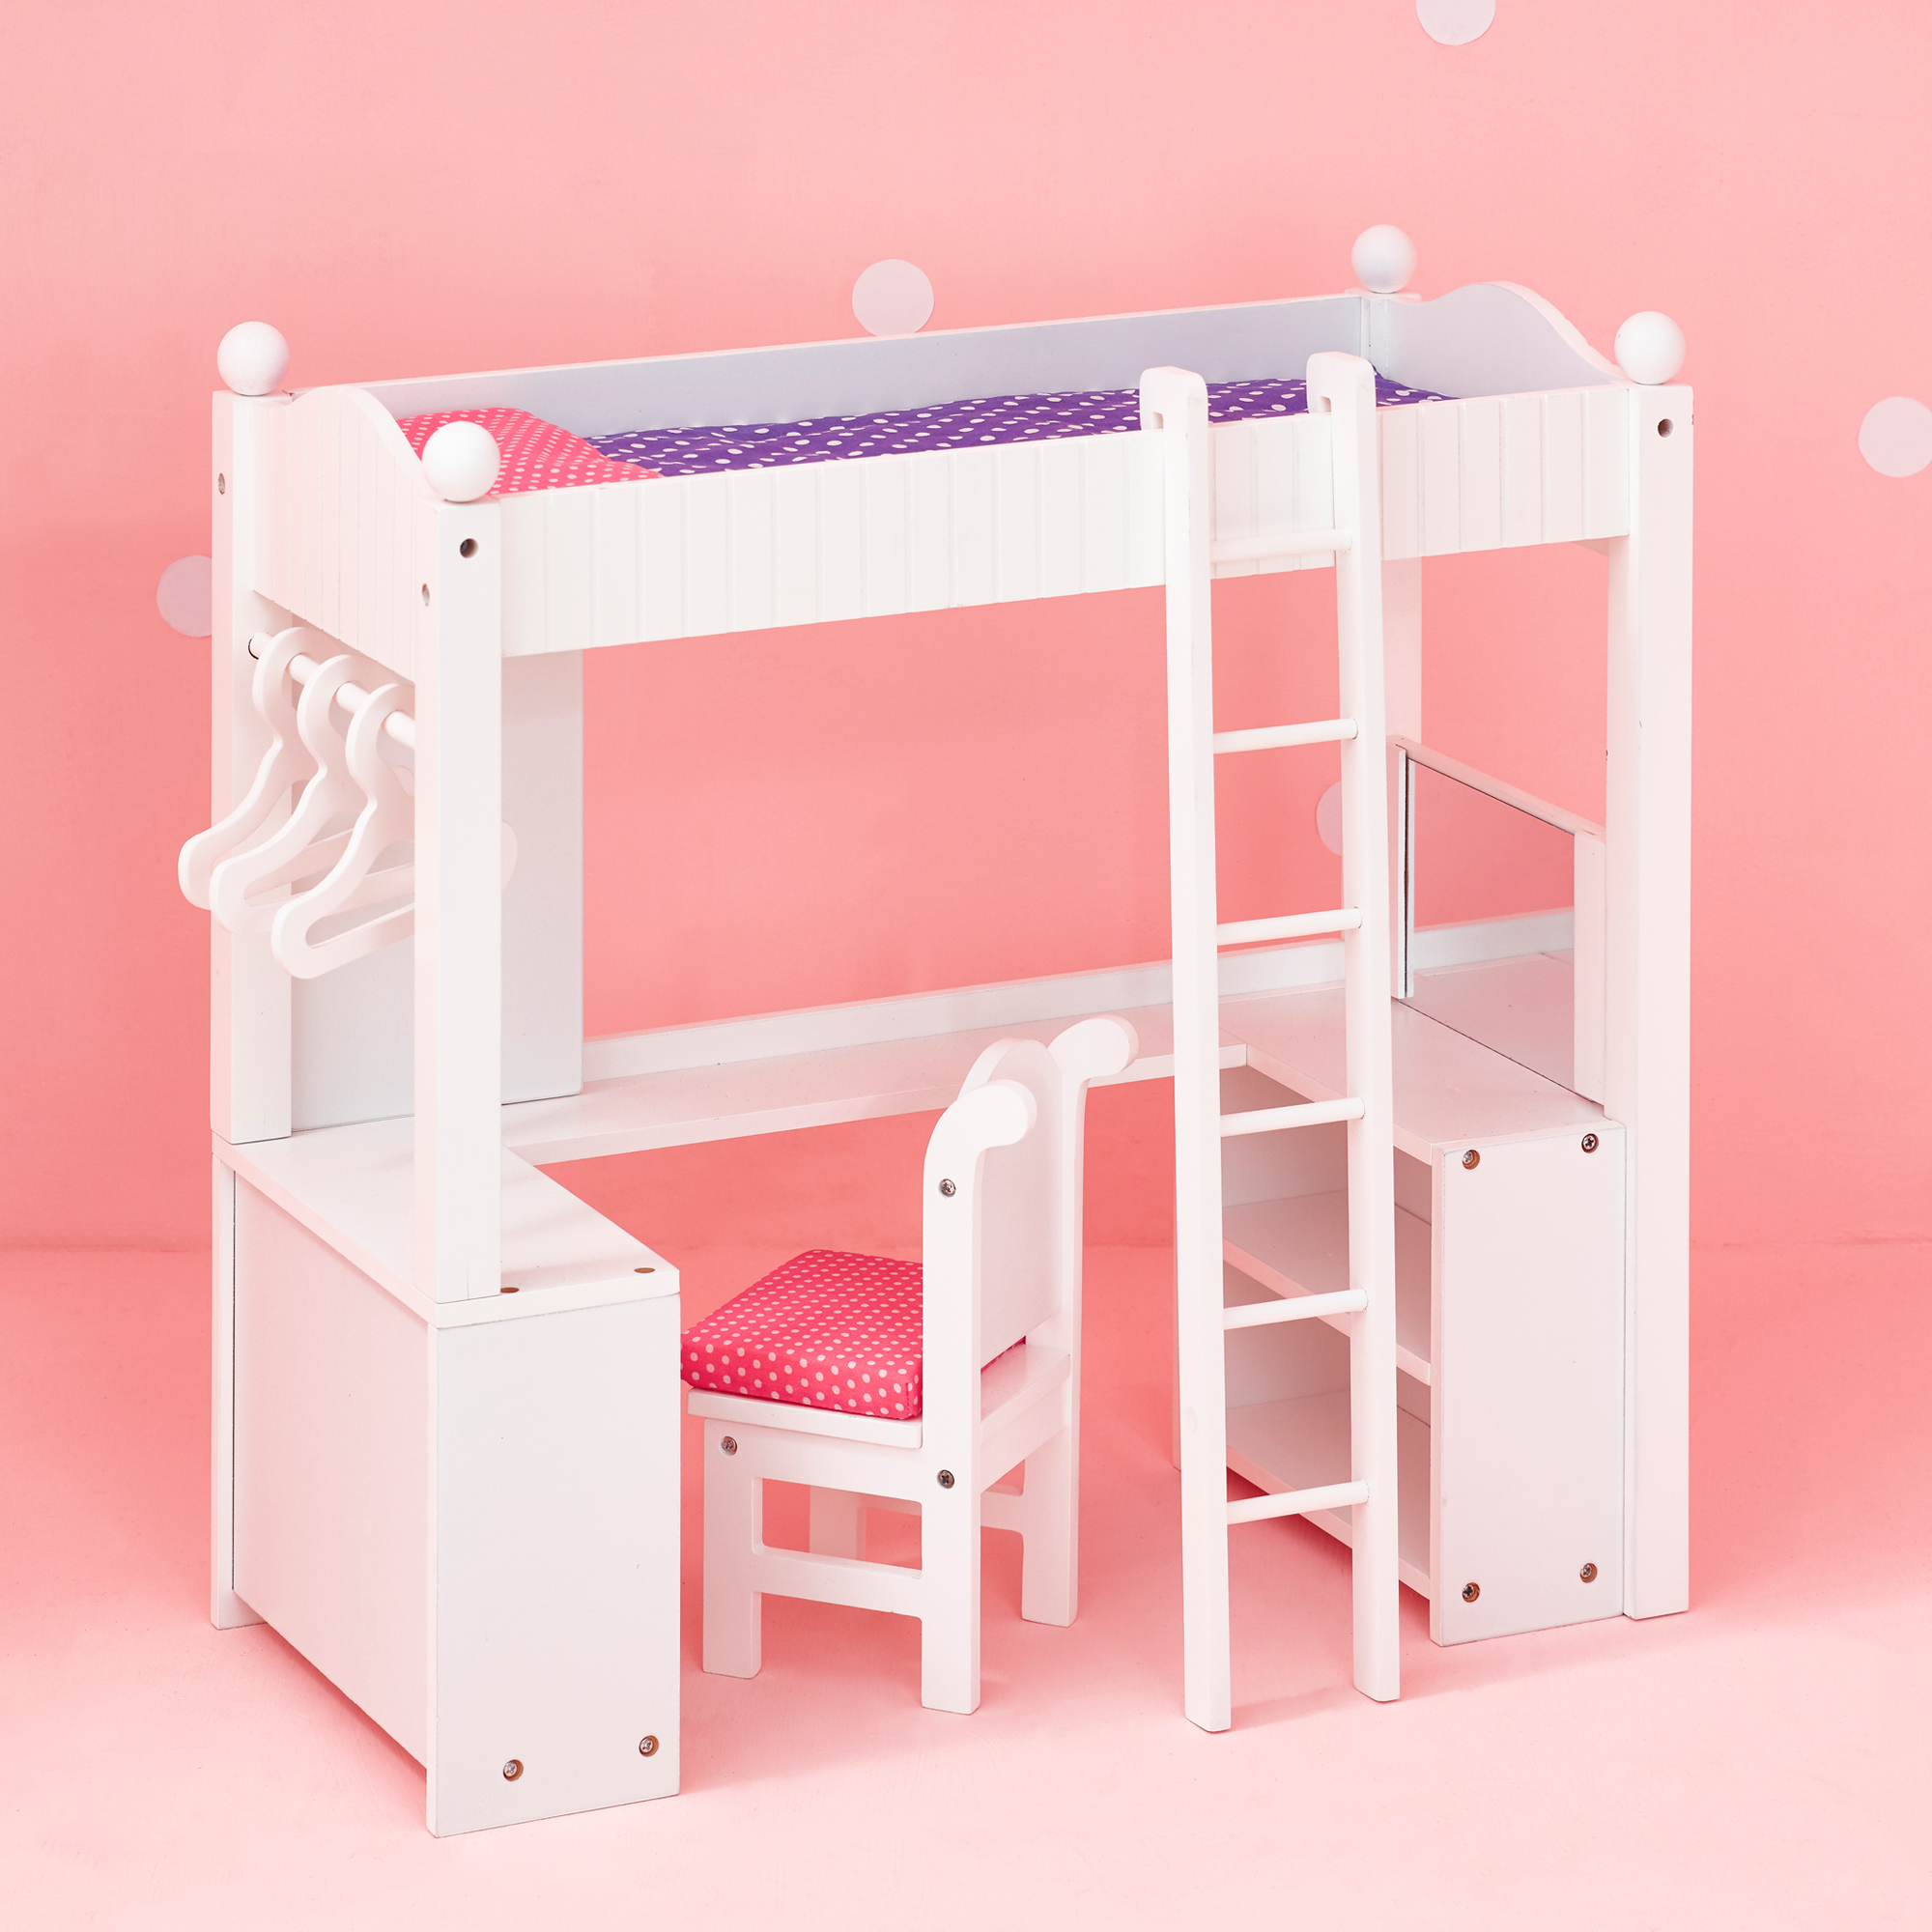 Olivia's Little World Princess College Dorm Double Bunk Desk (Grey Polka Dots) Wooden 18 inch Doll Furniture by Teamson